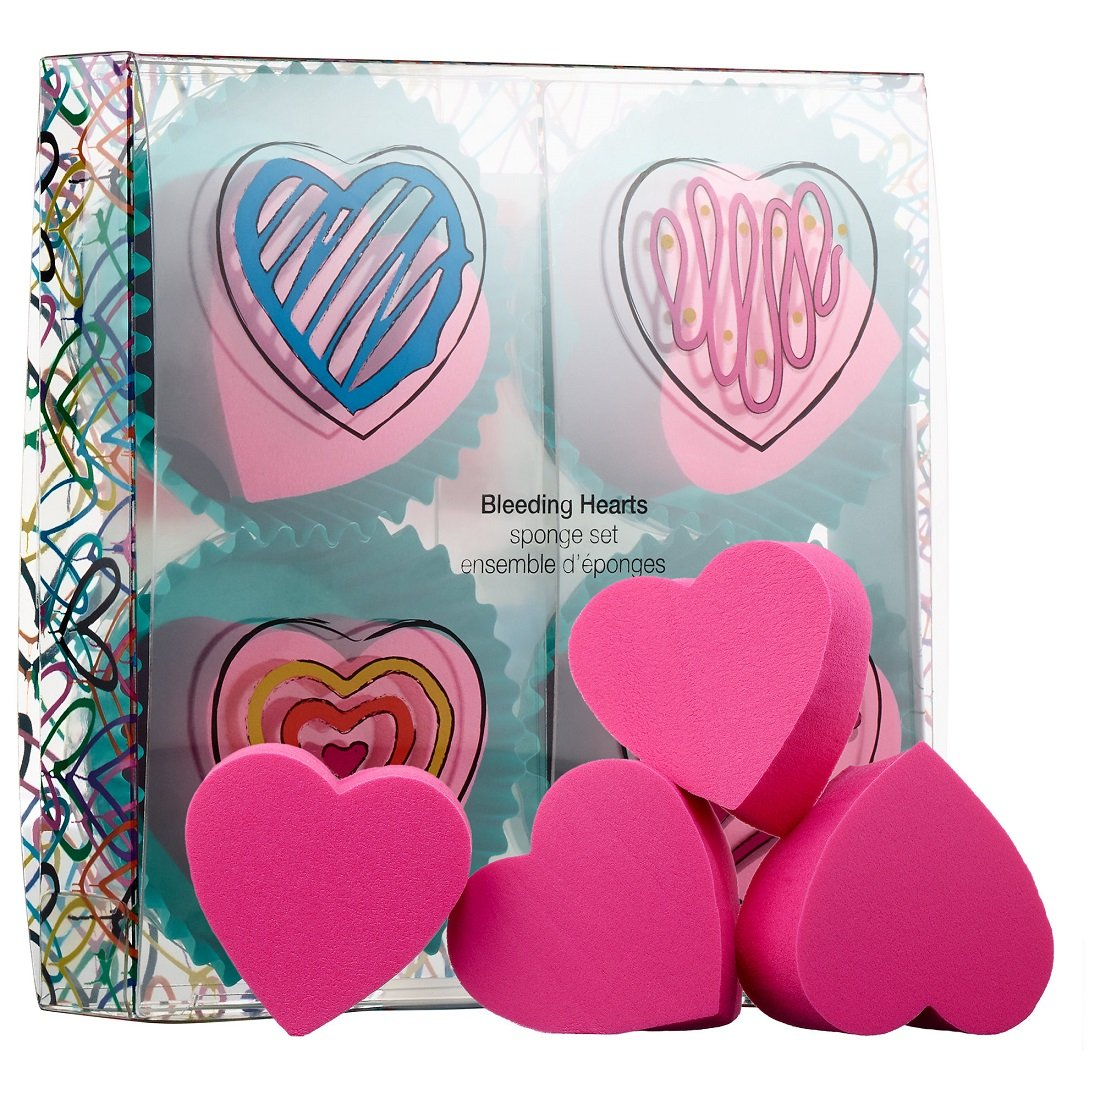 Sephora Bleeding Hearts Mini Makeup Sponges (Set of 4)